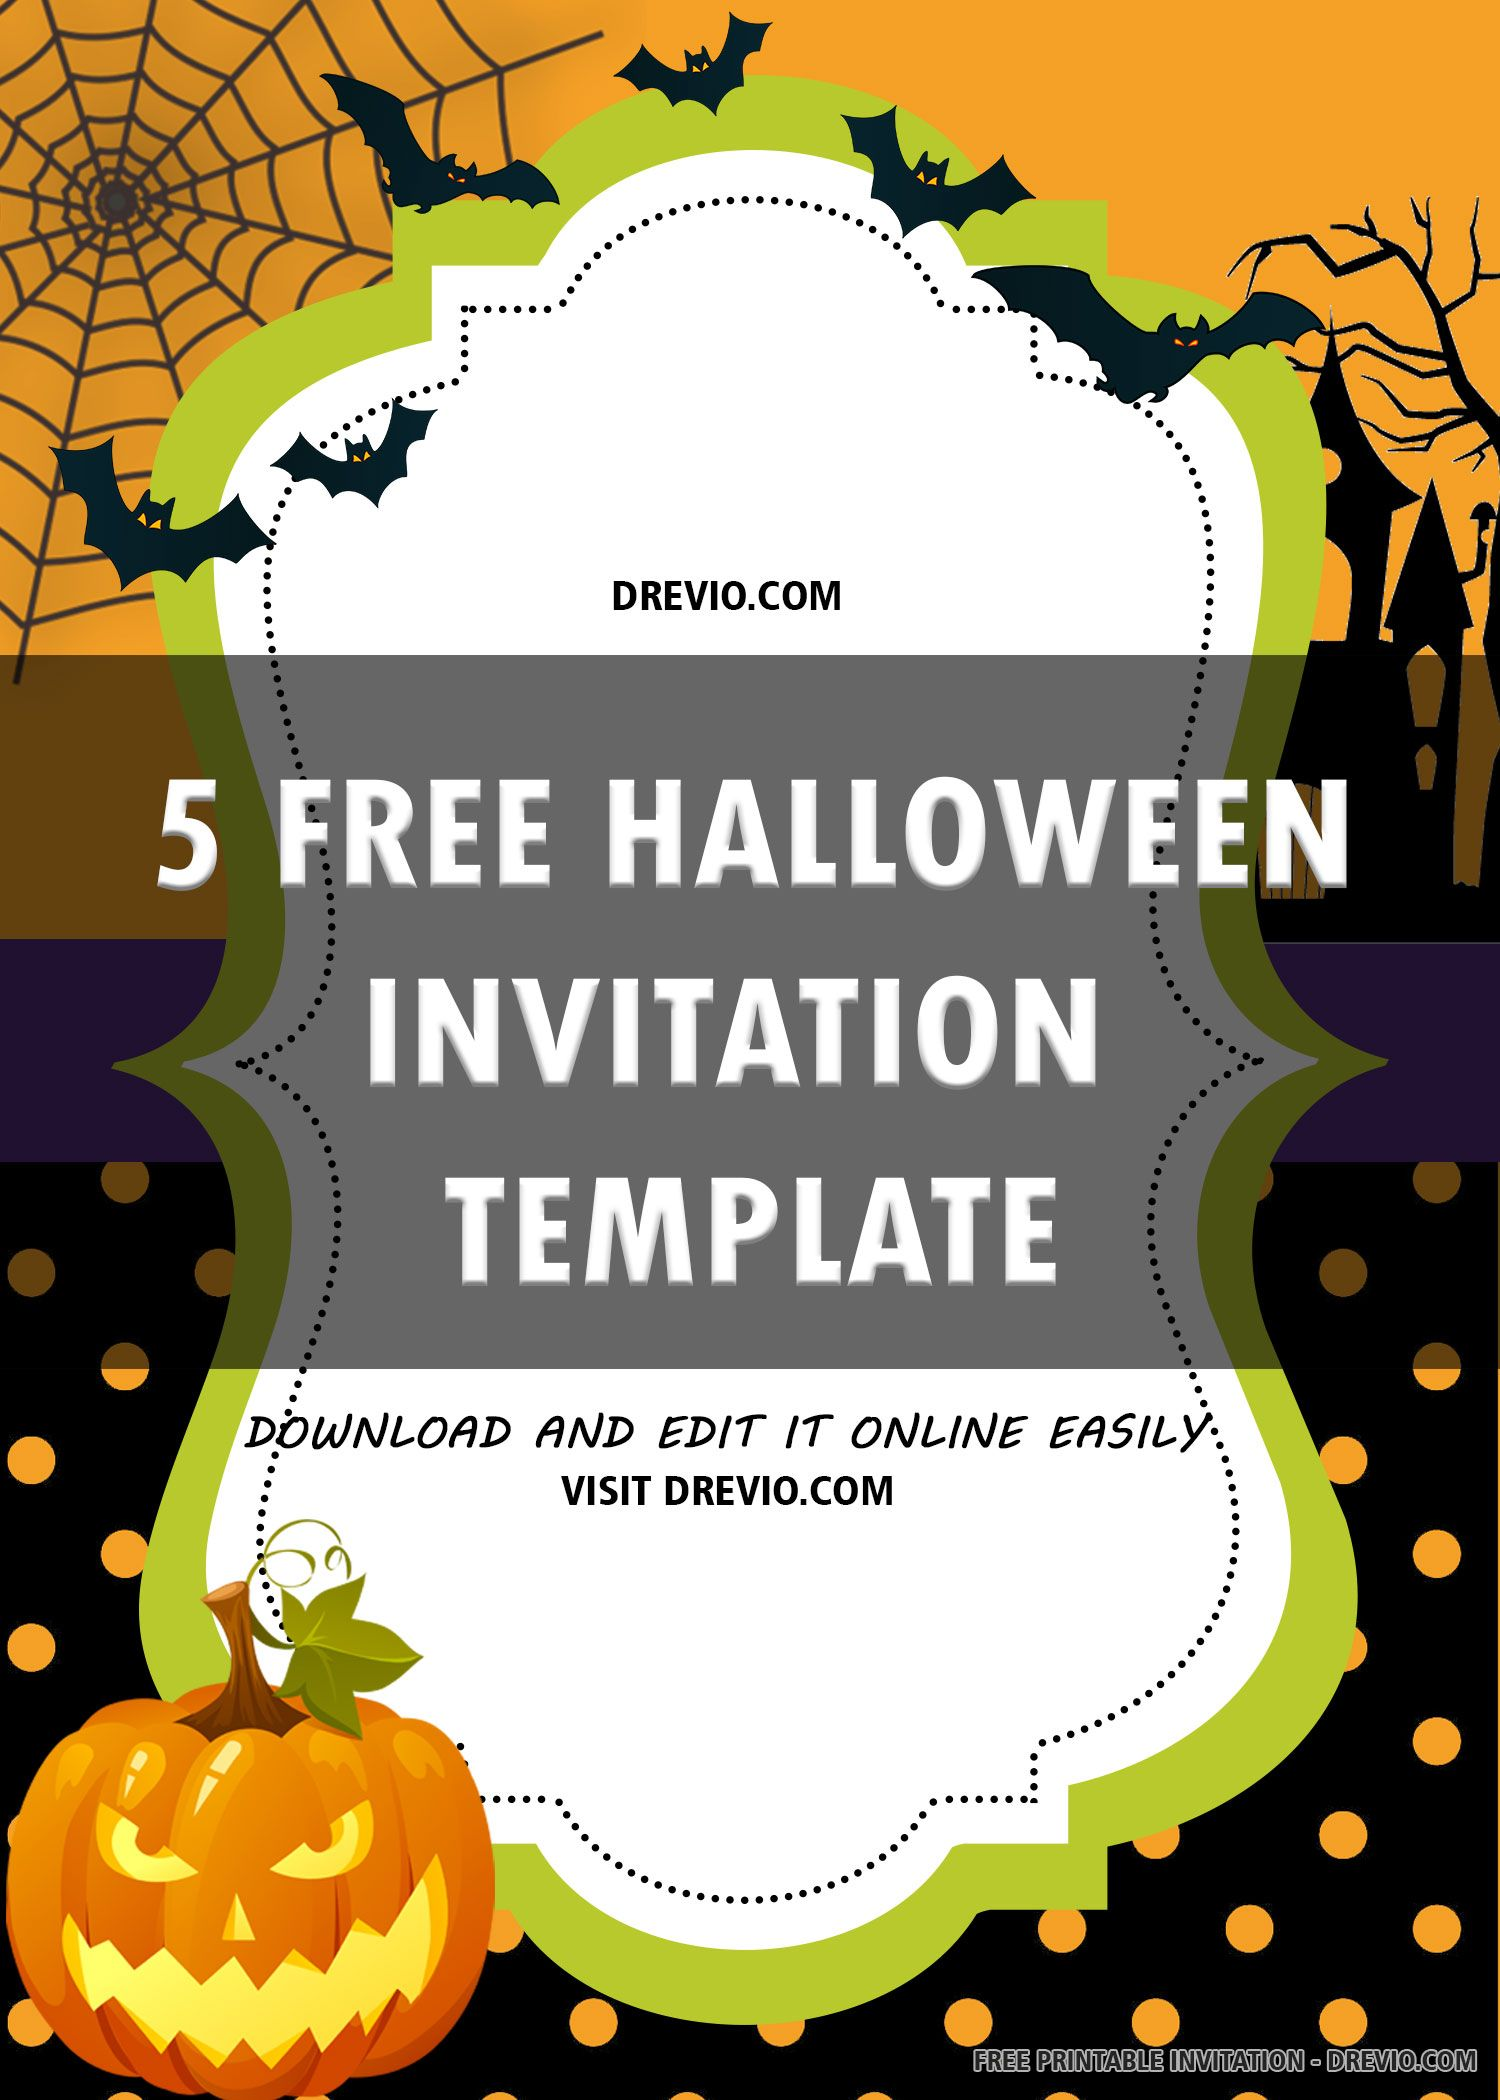 Free Printable Halloween Invitation Templates Halloween Birthday Invitations Halloween Party Invitation Template Halloween Birthday Party Invitations